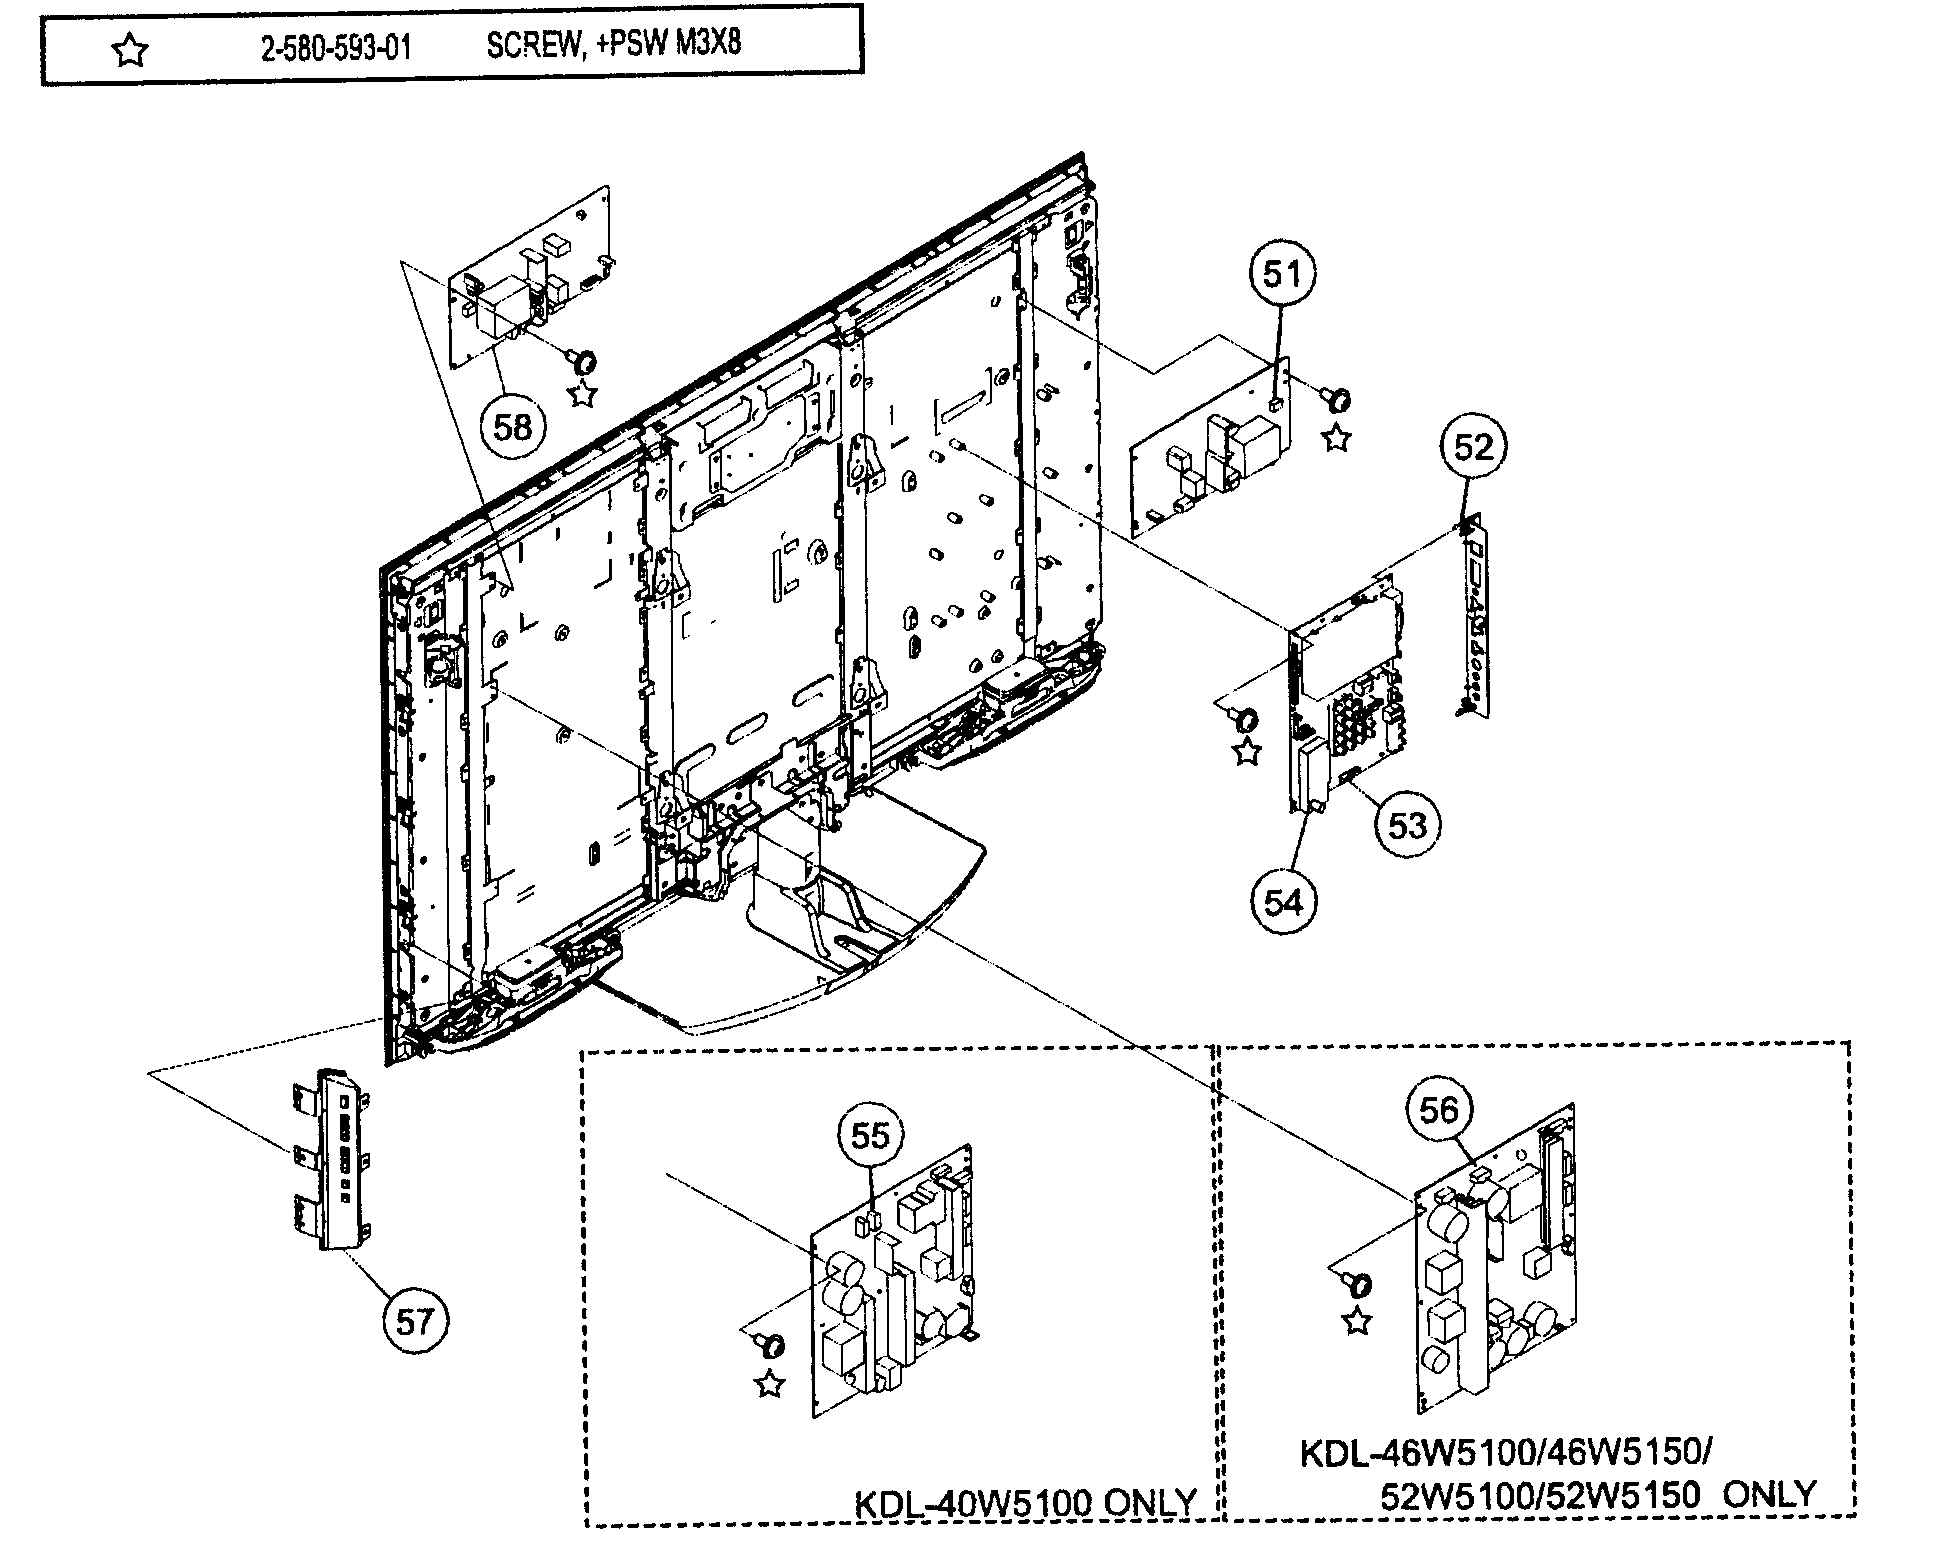 CHASSIS Diagram & Parts List for Model kdl-46w5100 Sony